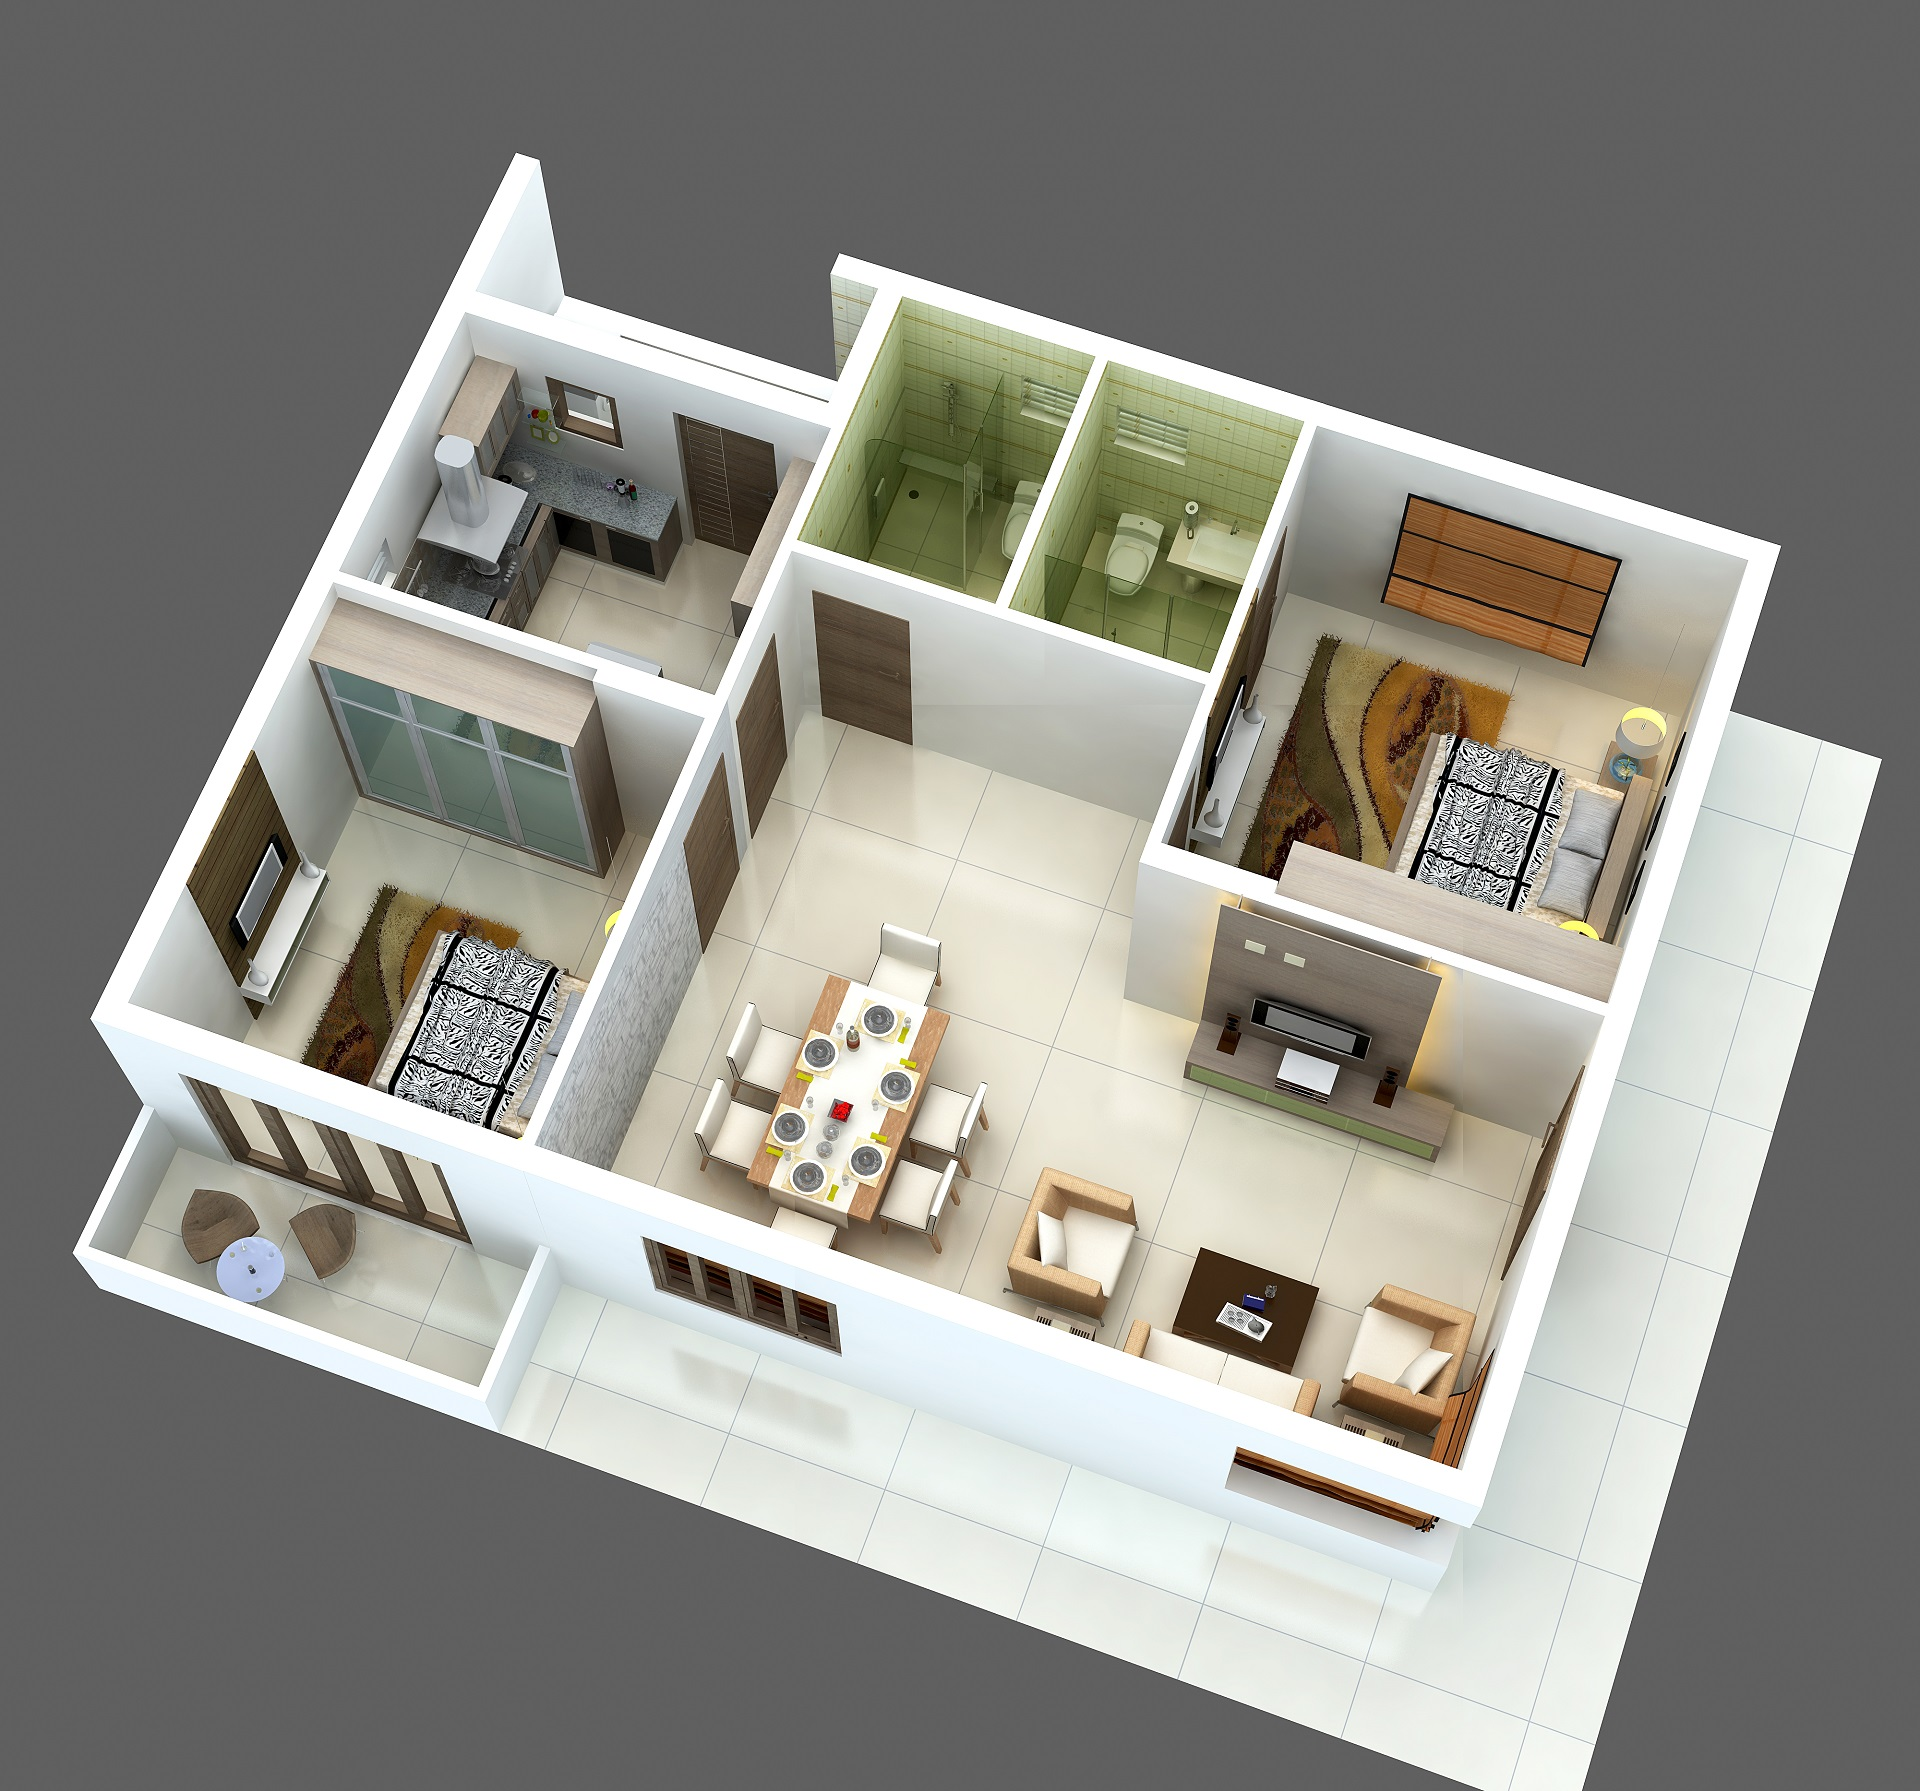 ar-concepts-emami-apartment-residential-west-double-bedroom-image-b